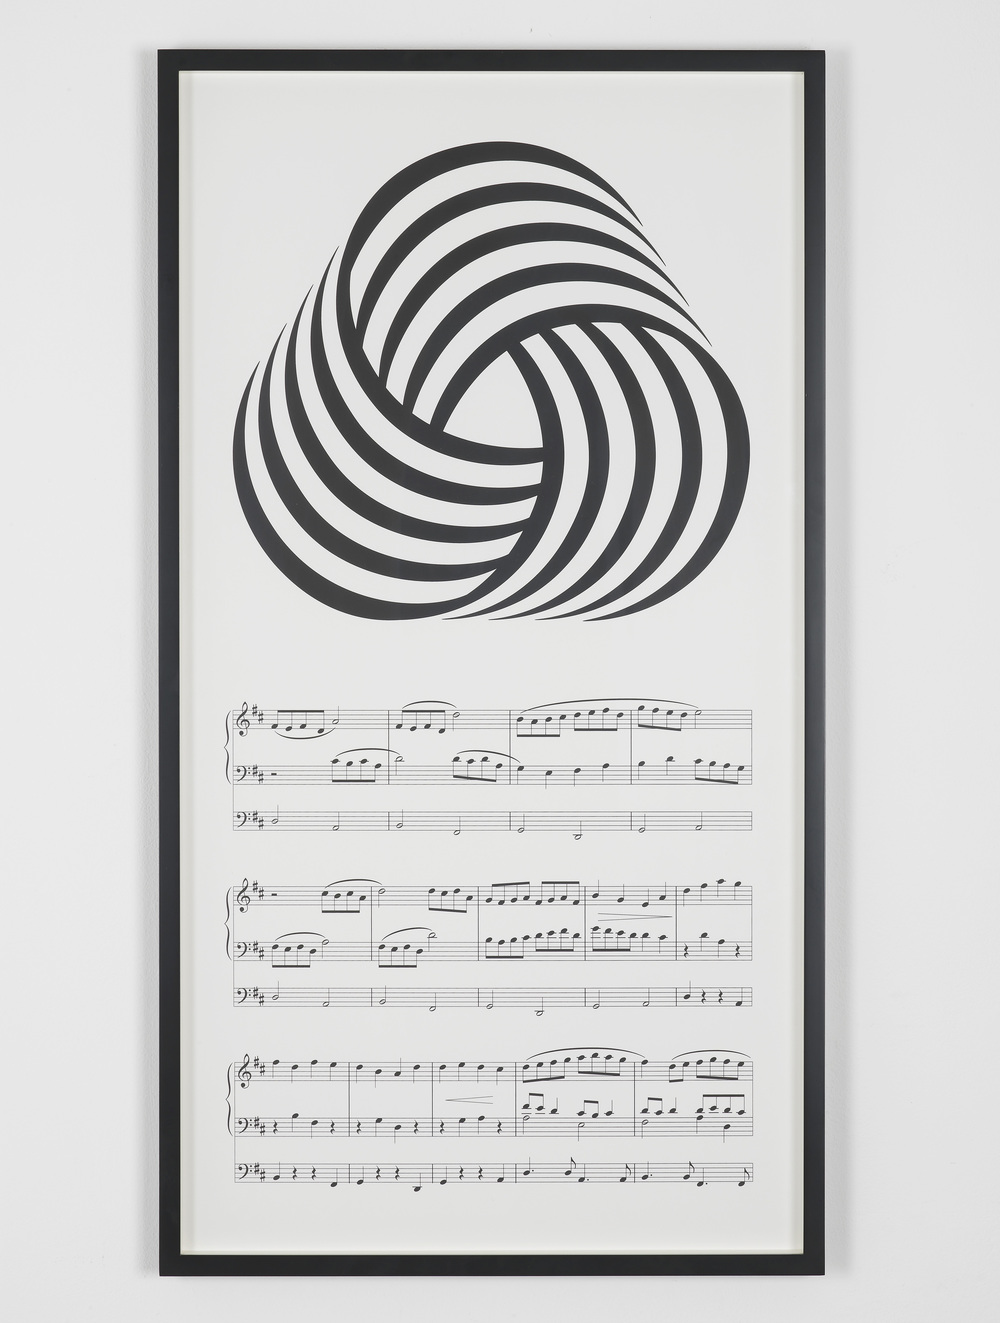 Ideology and The Mass Media (I Was Seduced, Not Abused) 2012 Screenprint 85 x 45 cm / 33.4 x 17.7 in